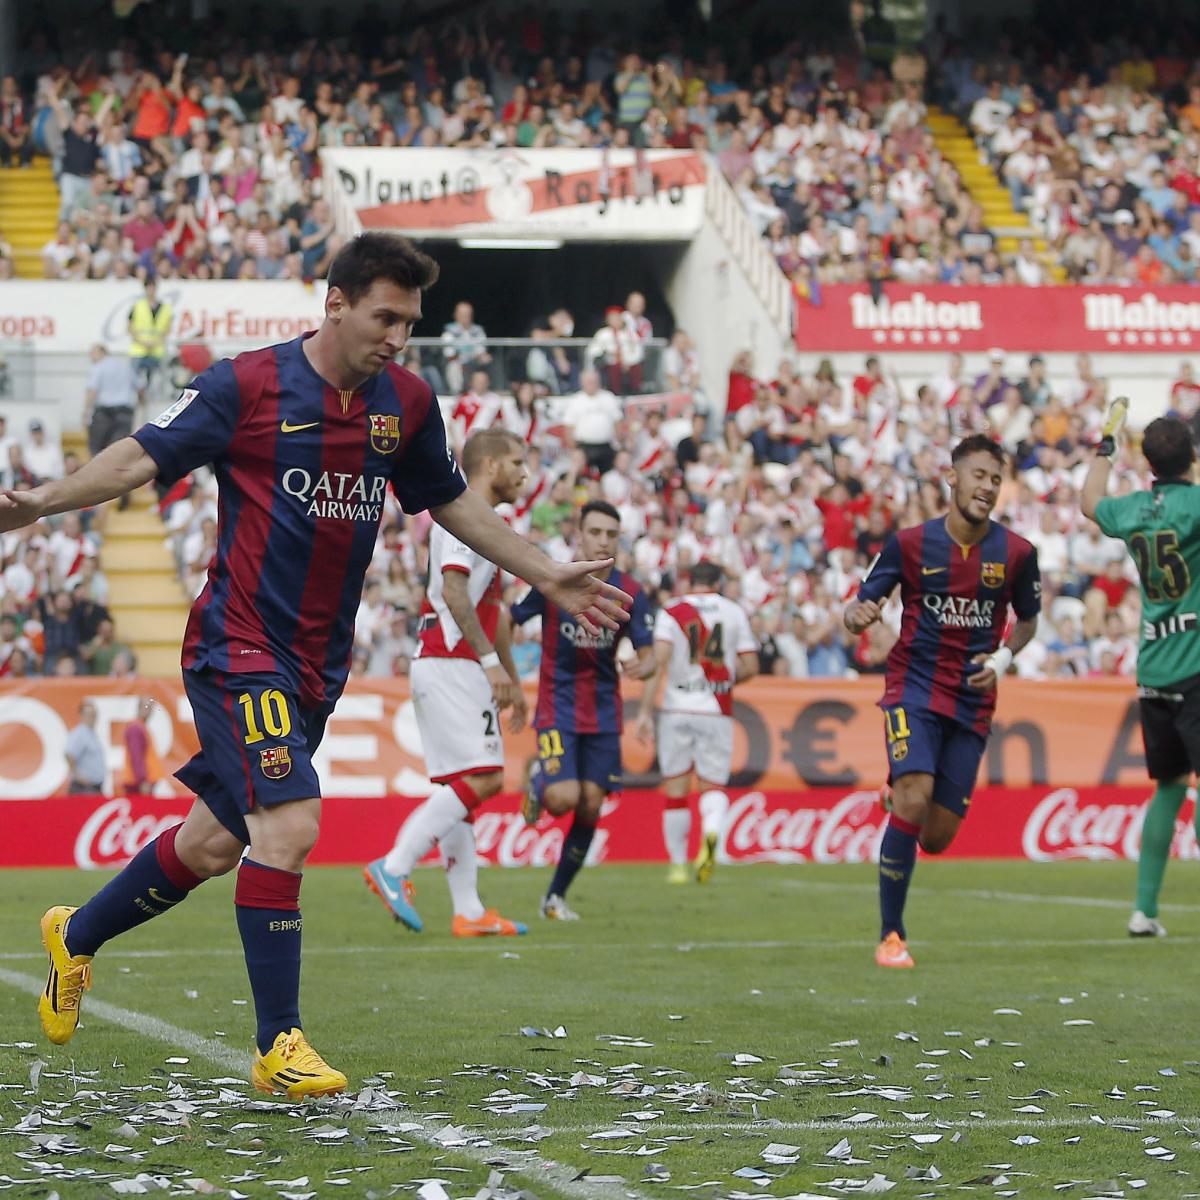 La liga table 2014 updated standings following matchday 8 - La liga latest results and table ...